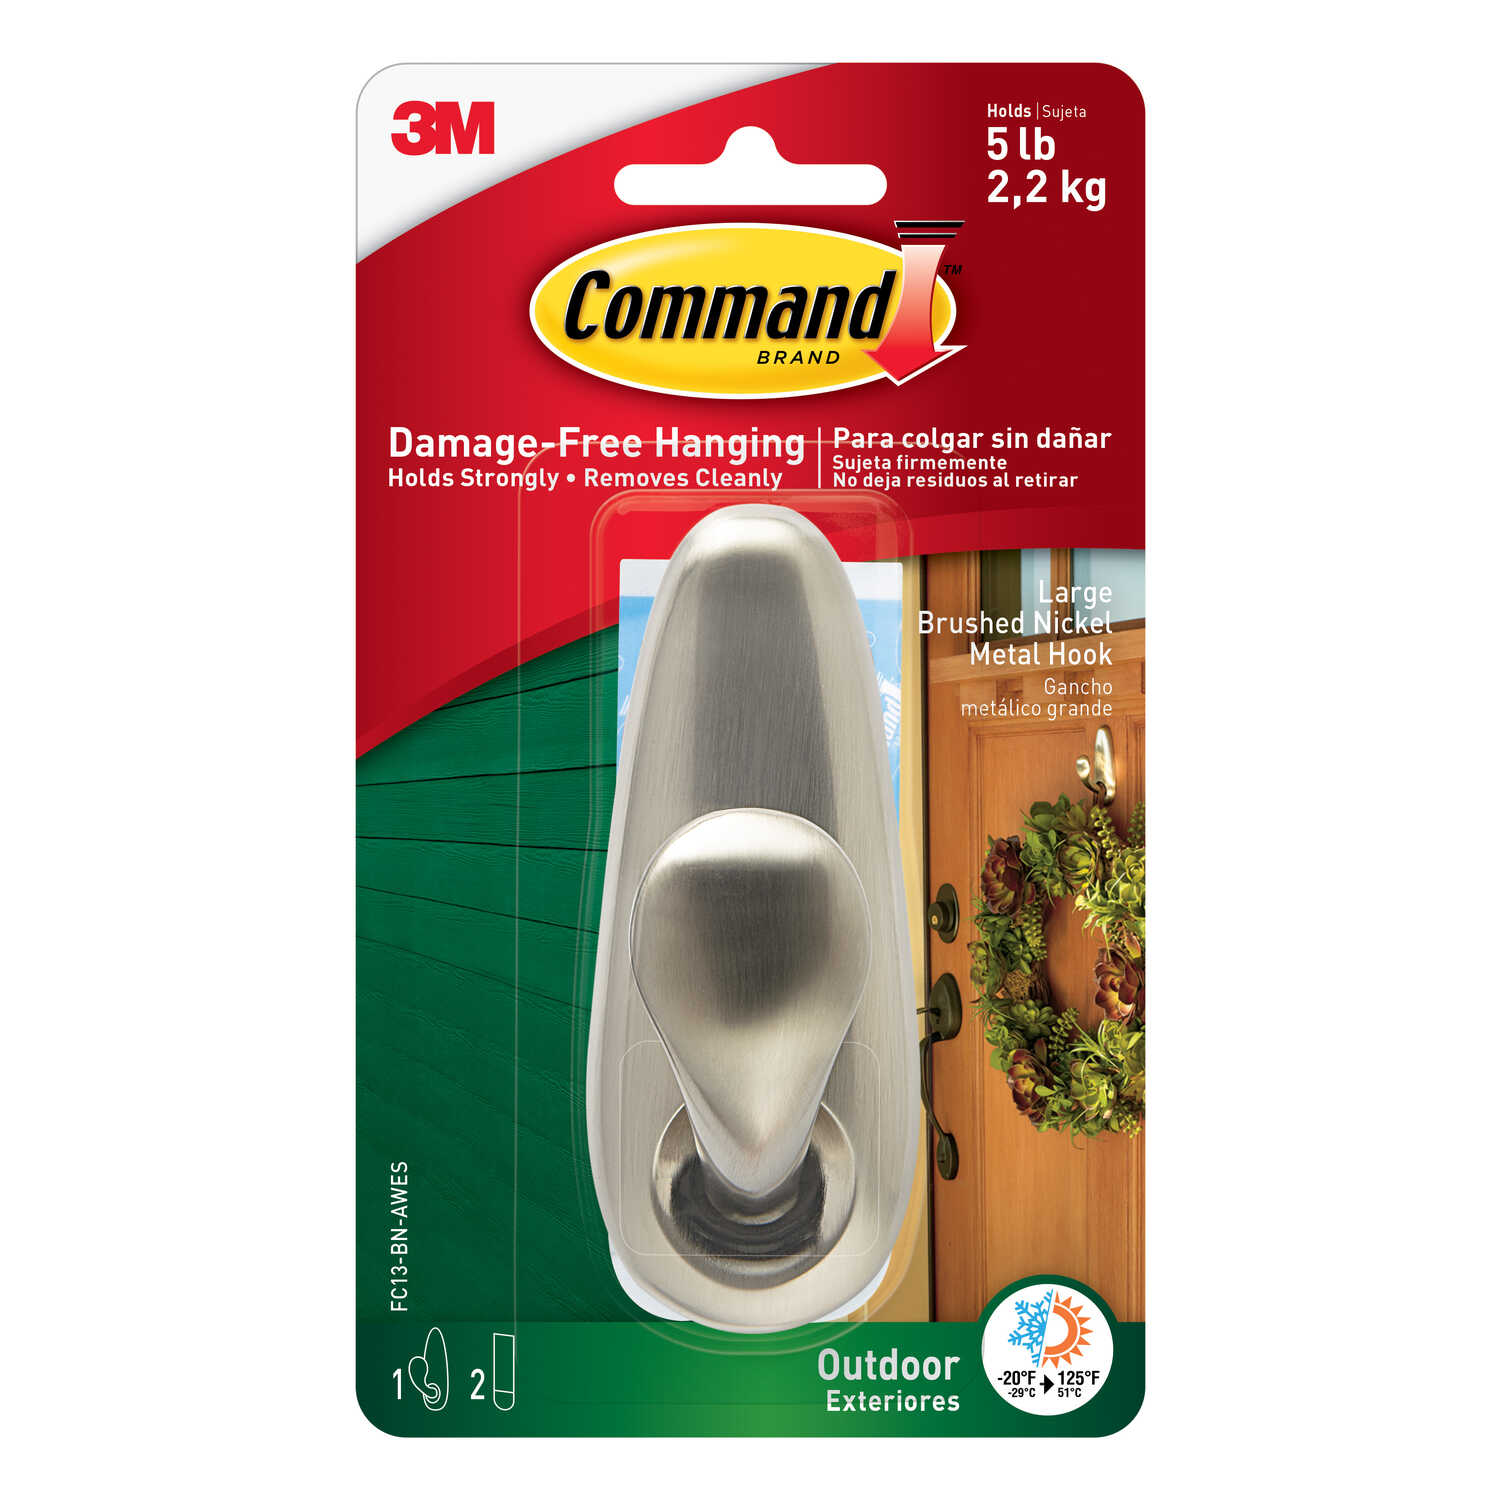 3M  Command  4-1/8 in. L Brushed Nickel  Metal  Large  Forever Classic  Coat/Hat Hook  5 lb. capacit